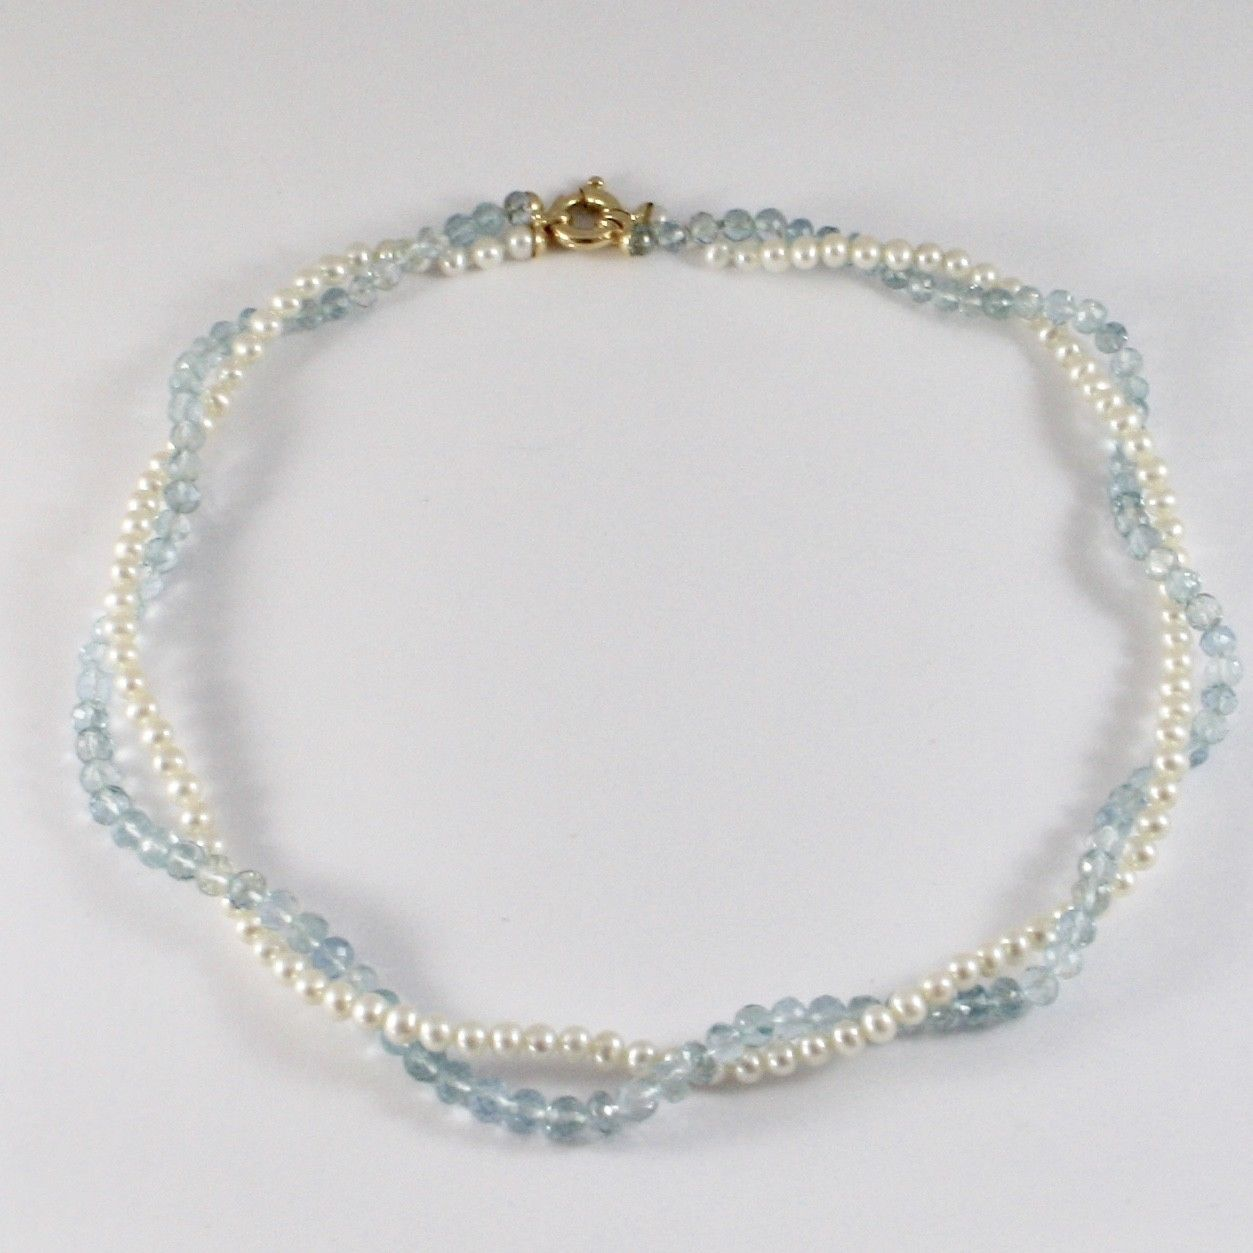 NECKLACE YELLOW GOLD 18KT WITH WHITE PEARLS AND AQUAMARINE NATURAL FACETED